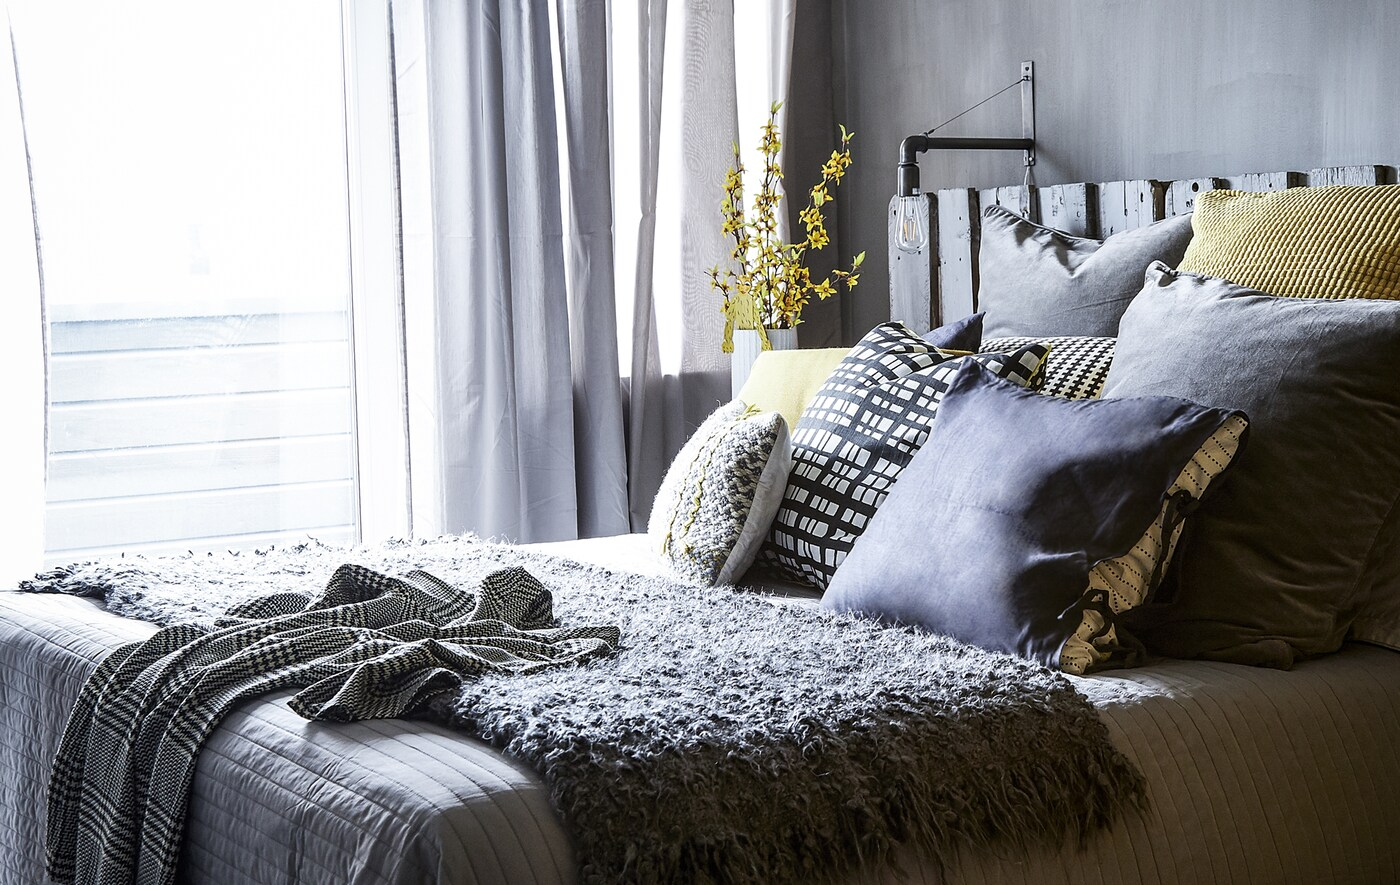 A bedroom with gray decor and yellow cushions.